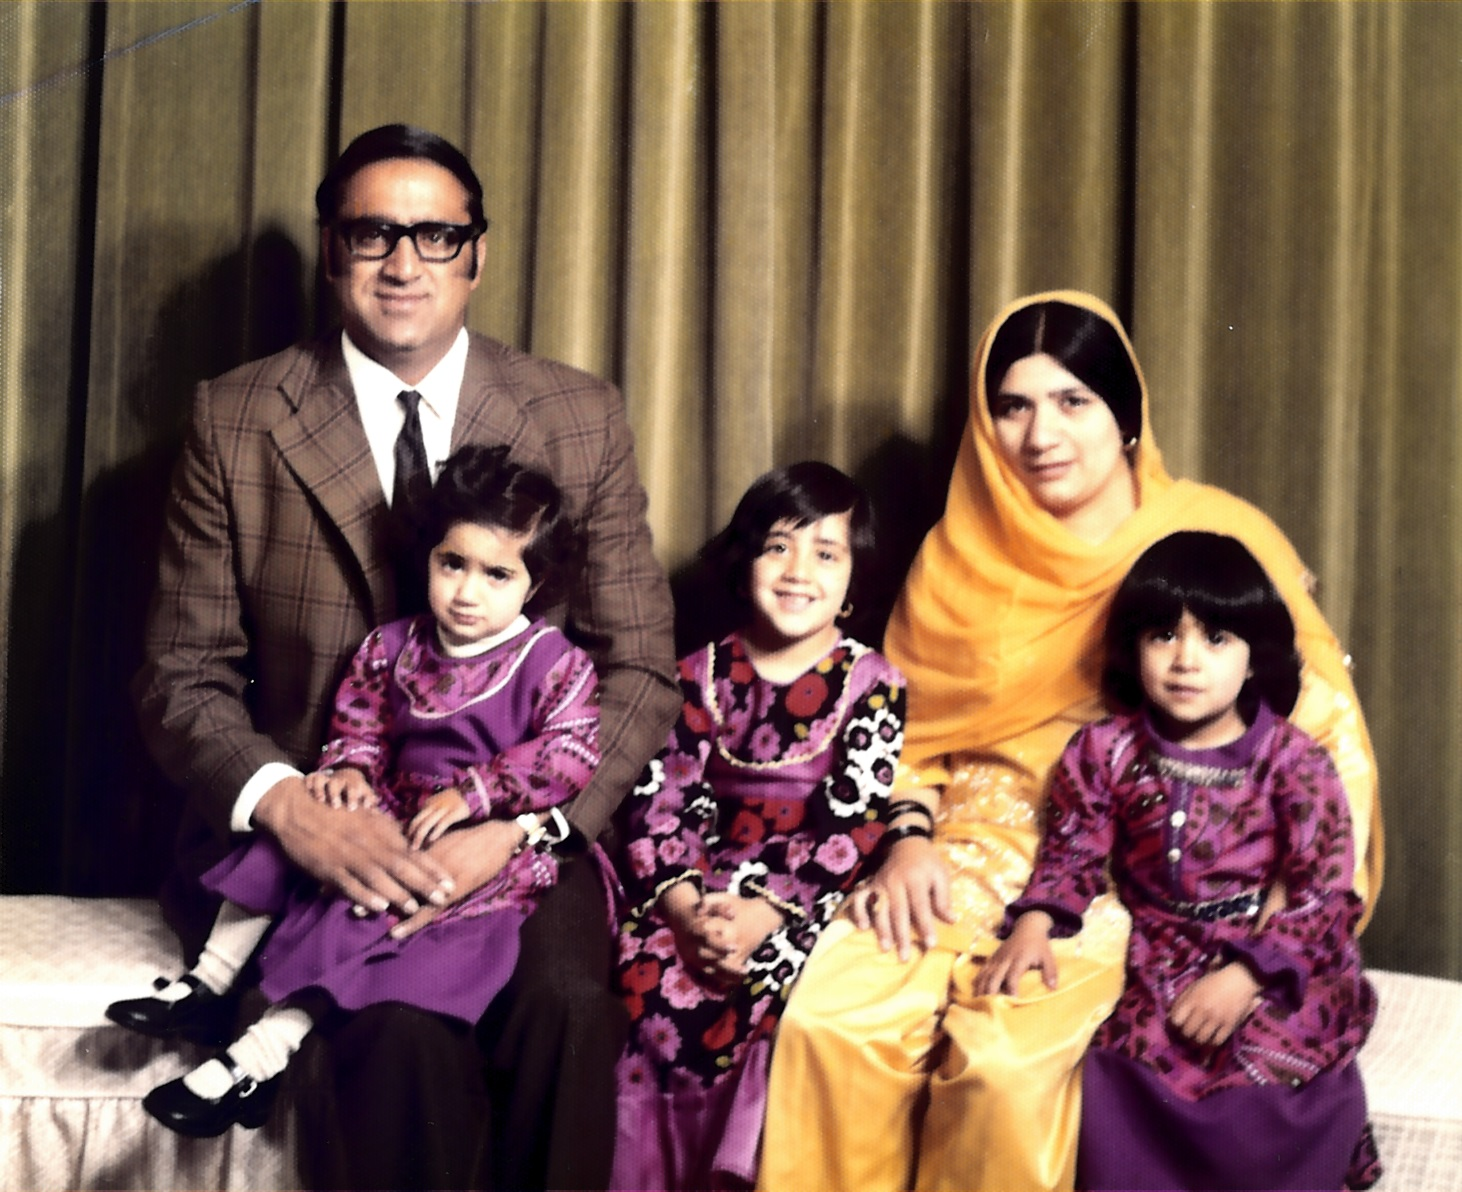 The Hanif family in 1975. Redding collection, Rugby Art Gallery and Museum.